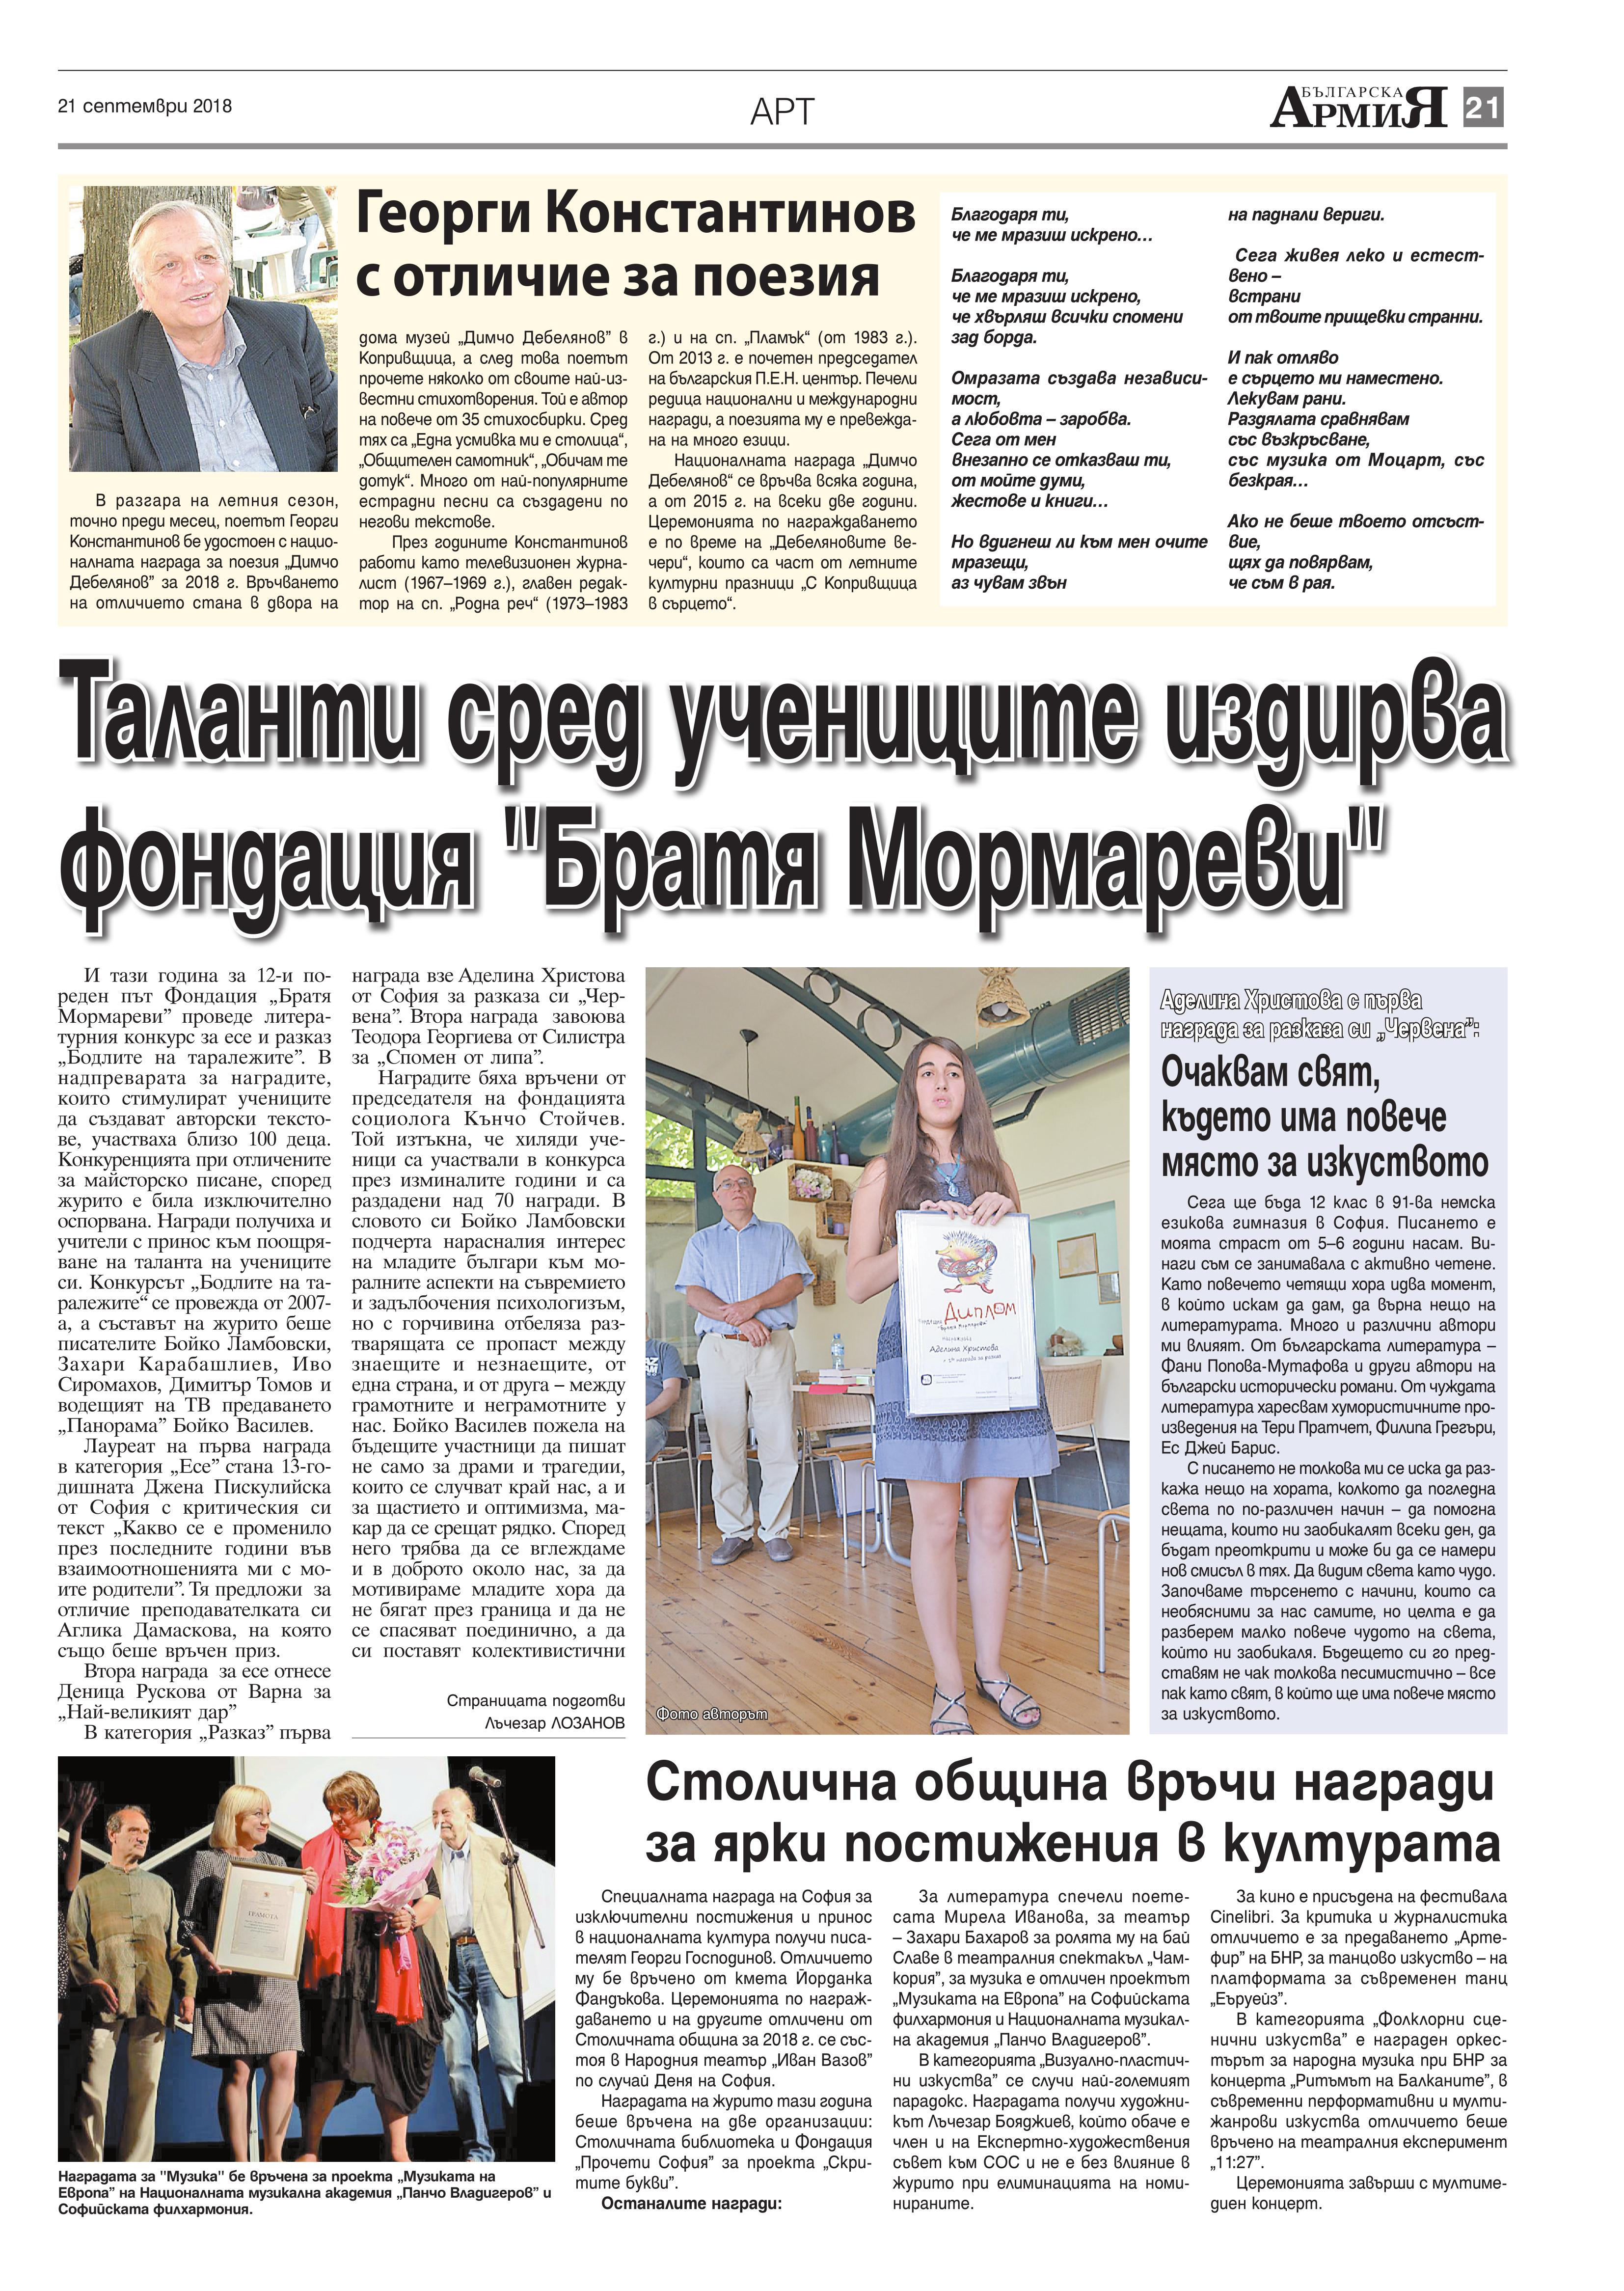 https://armymedia.bg/wp-content/uploads/2015/06/21.page1_-66.jpg